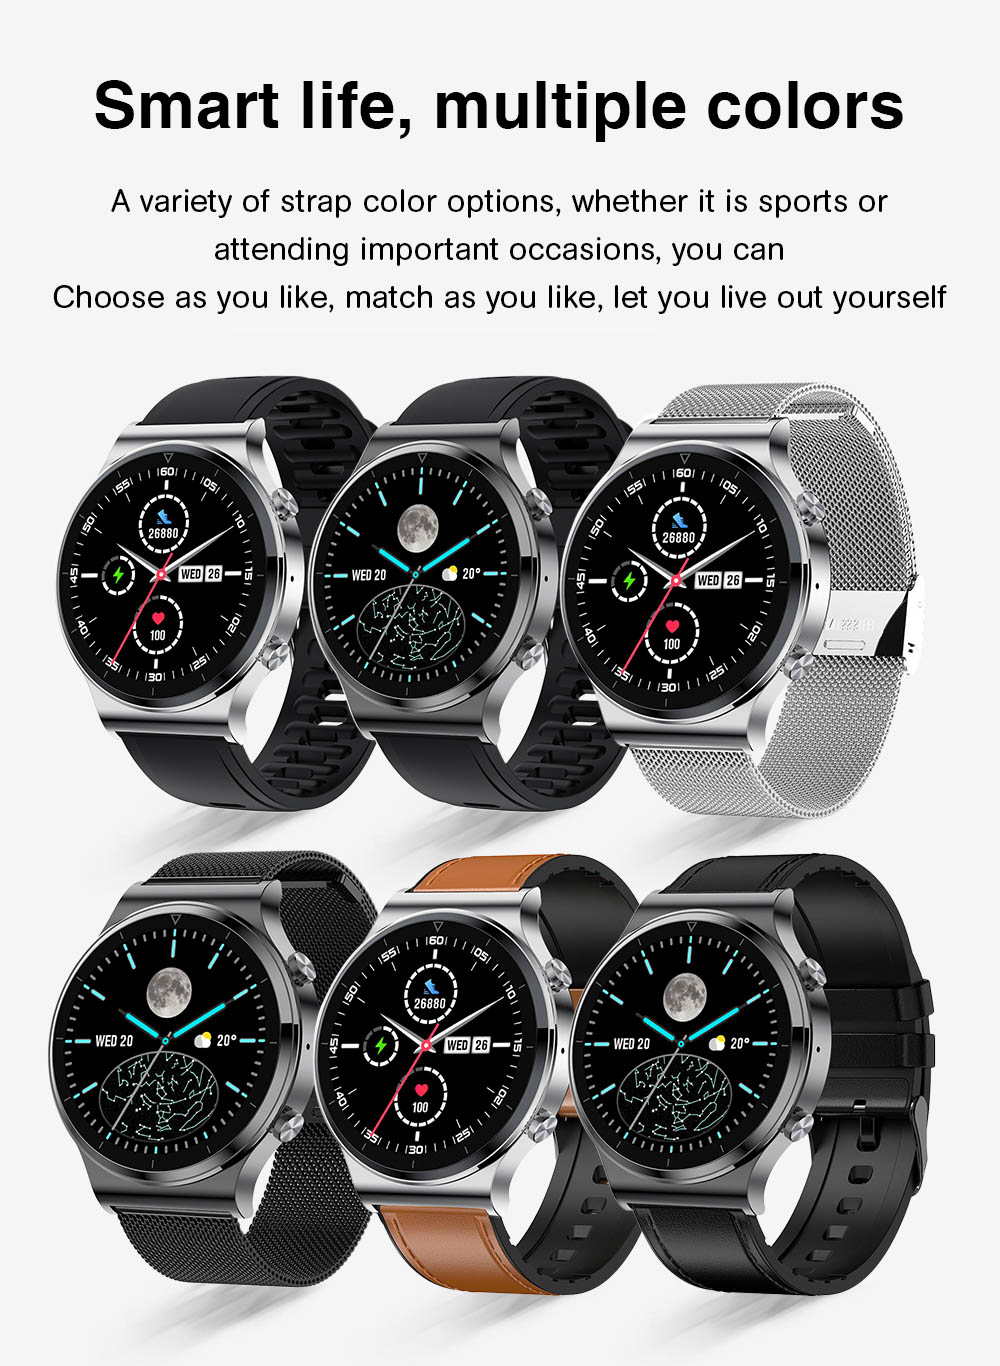 H86706ef97d444a408ee2ad578e7d30d0r NUOBO 2021 New Smart Watch Men Bluetooth Call Heart Rate Blood Pressure Sports IP68 Waterproof Smartwatch for Android IOS Phone